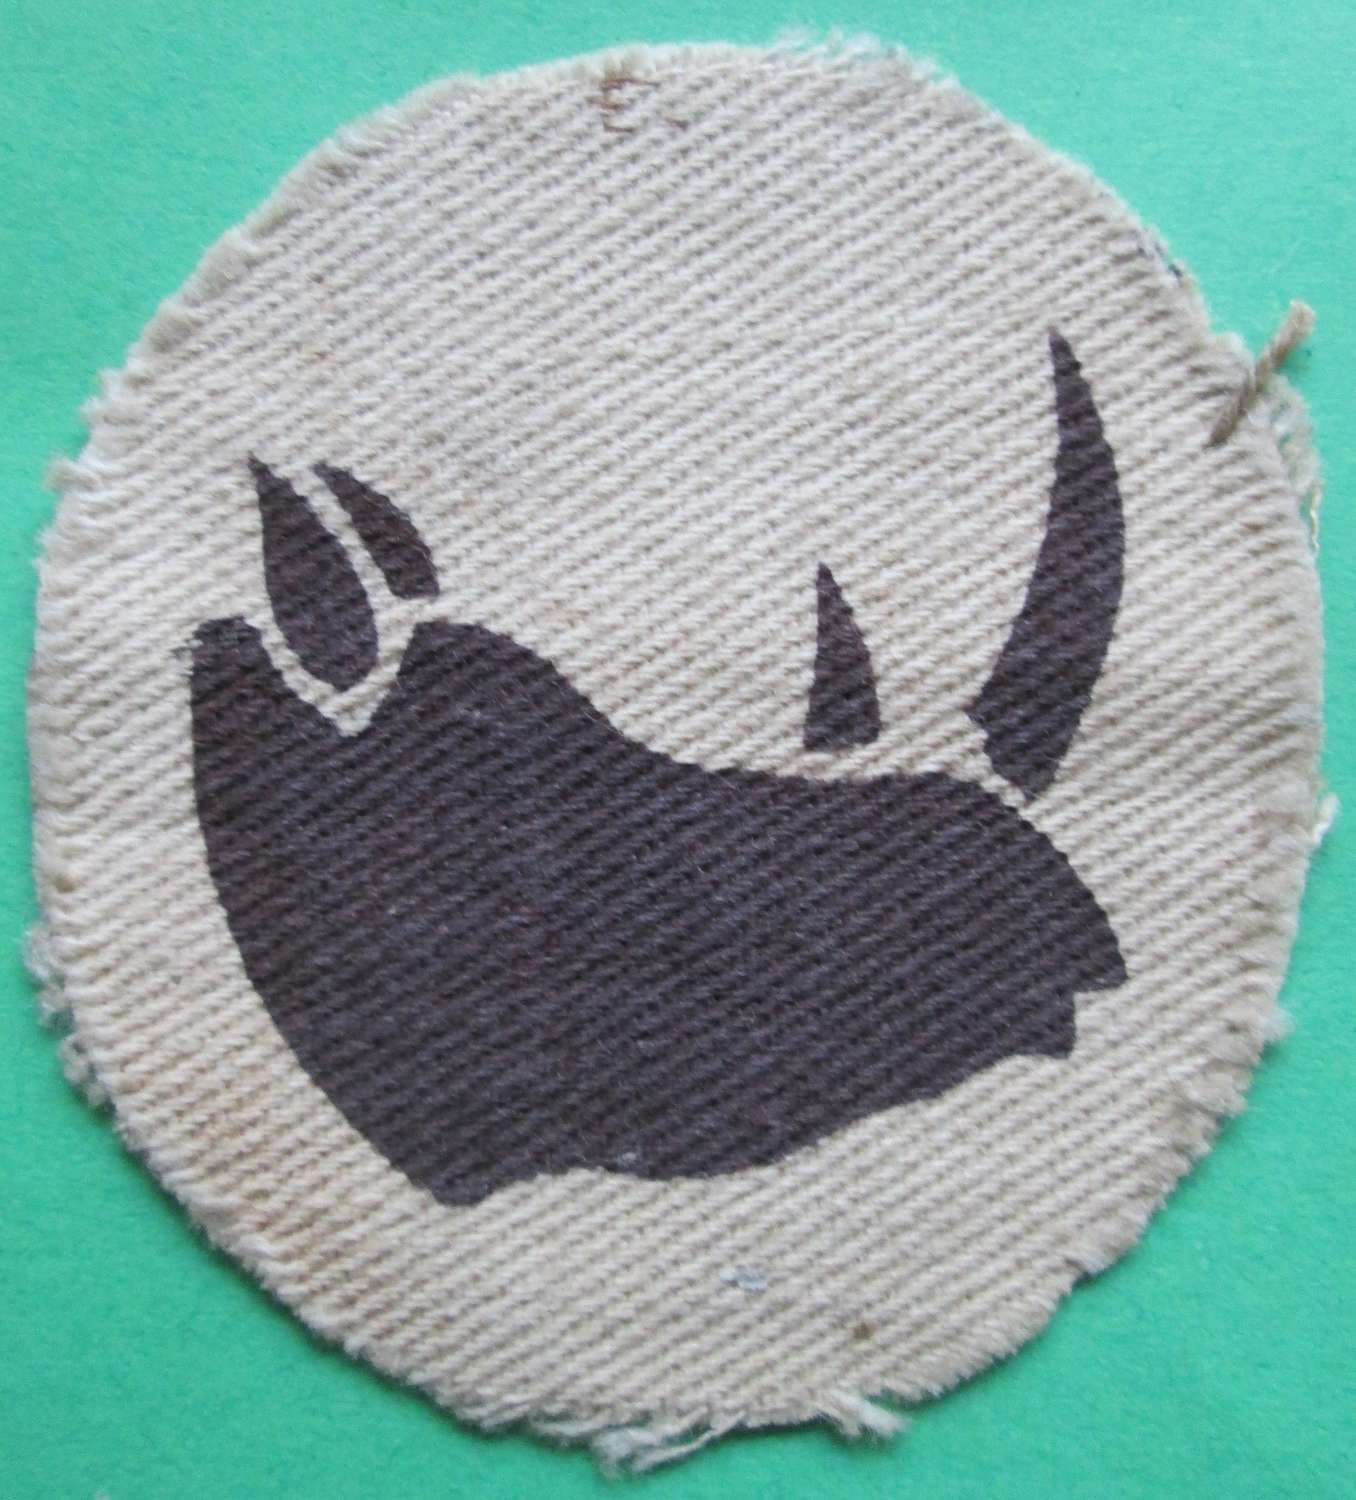 A SCARCE WWII  11 (EAST AFRICAN ) DIVISION PATCH